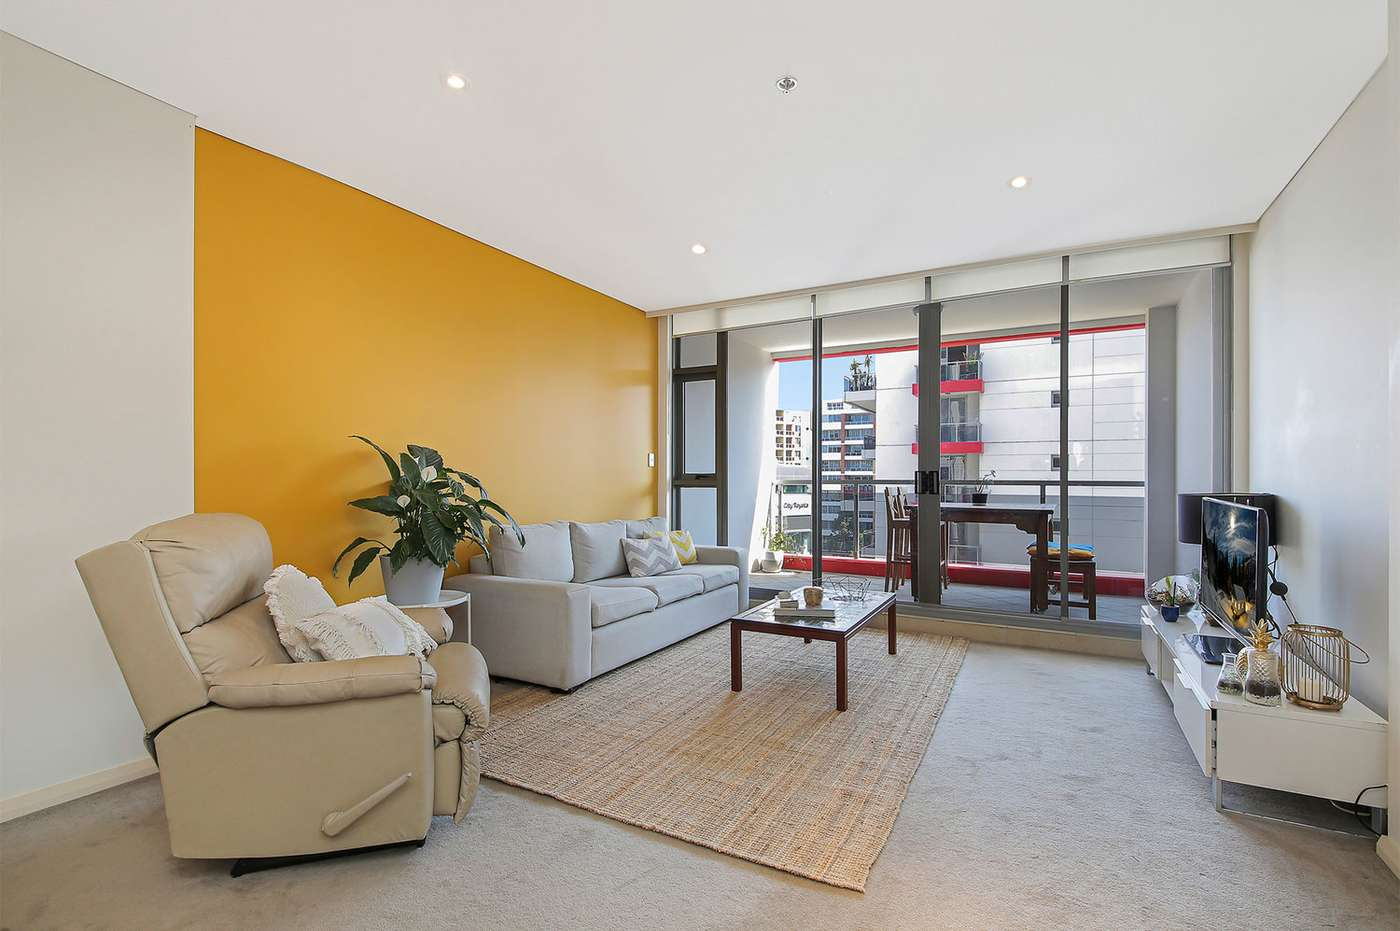 Main view of Homely apartment listing, 735/2-4 Lachlan Street, Waterloo, NSW 2017